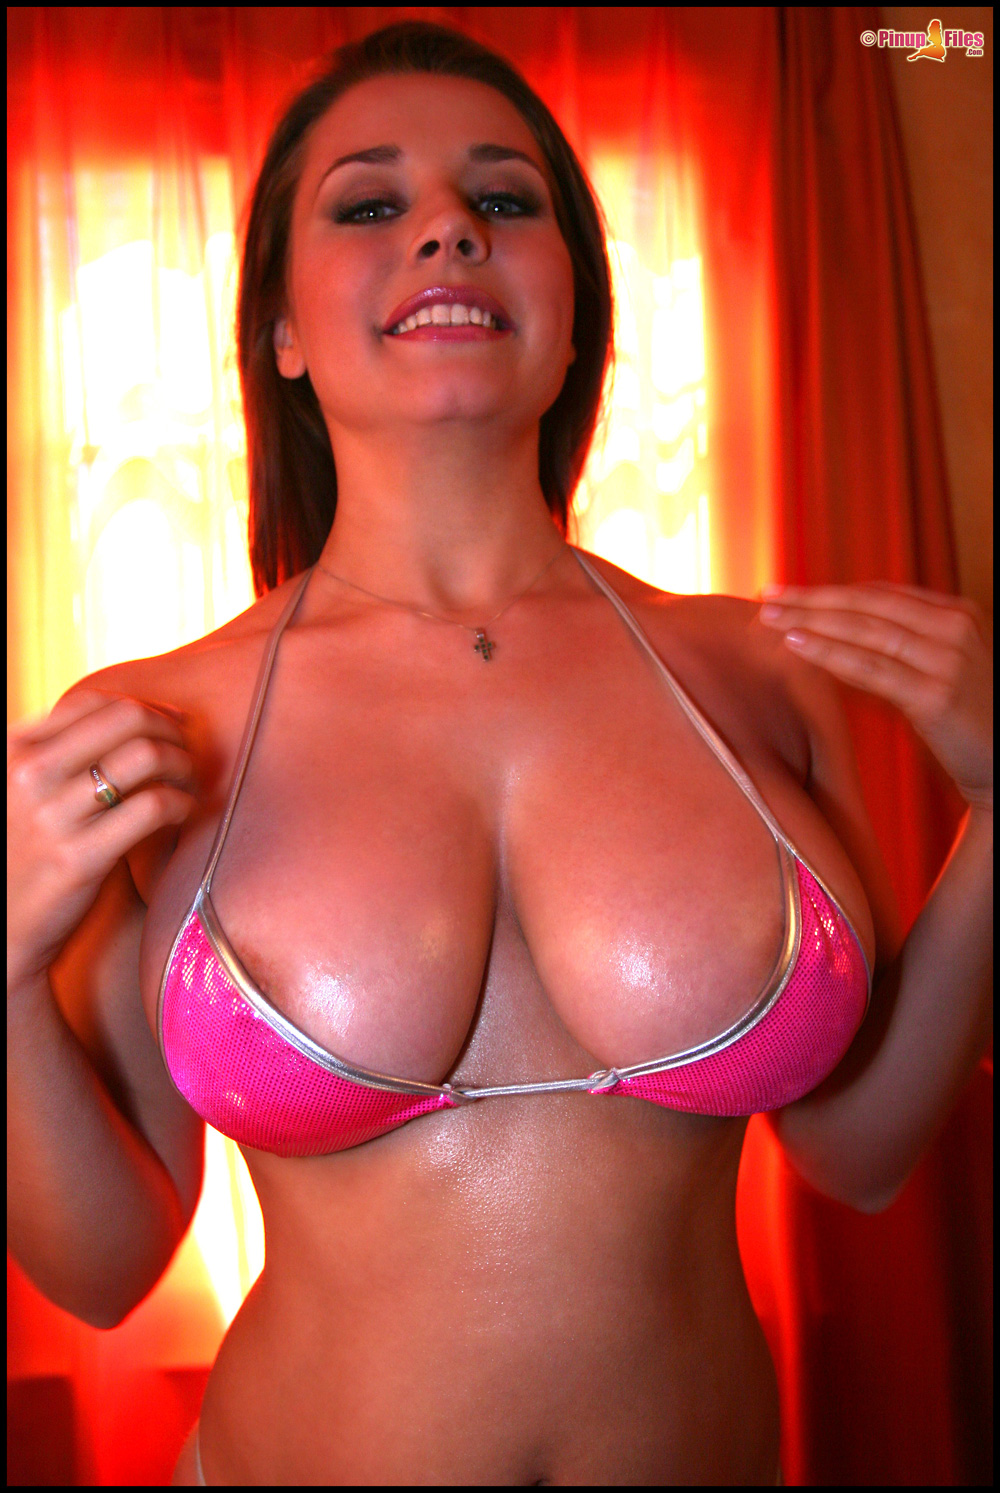 Busty-Oiled-Babe-Erica-Campbell-with-Huge-Tits-Wearing-Bikini-4